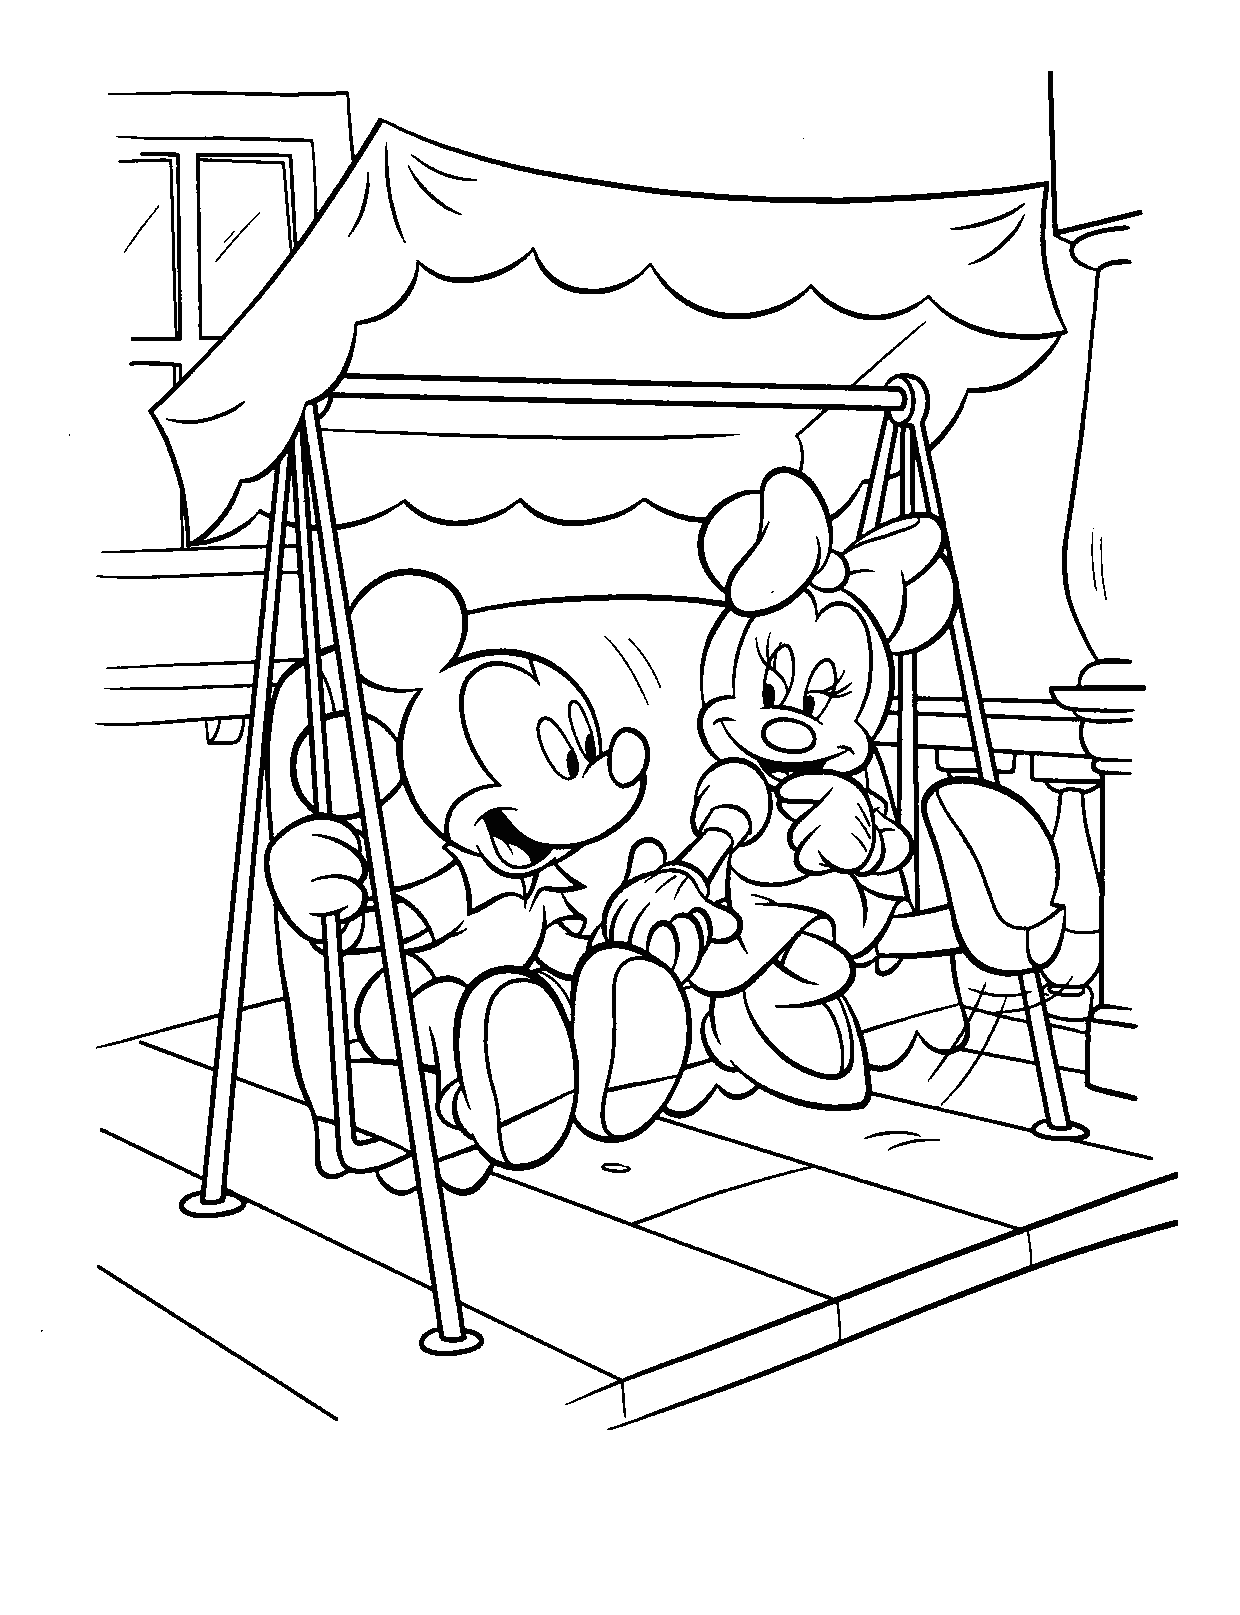 free printable mickey and minnie mouse coloring pages coloring pages of mickey and minnie mouse printable mickey free mouse coloring pages minnie and